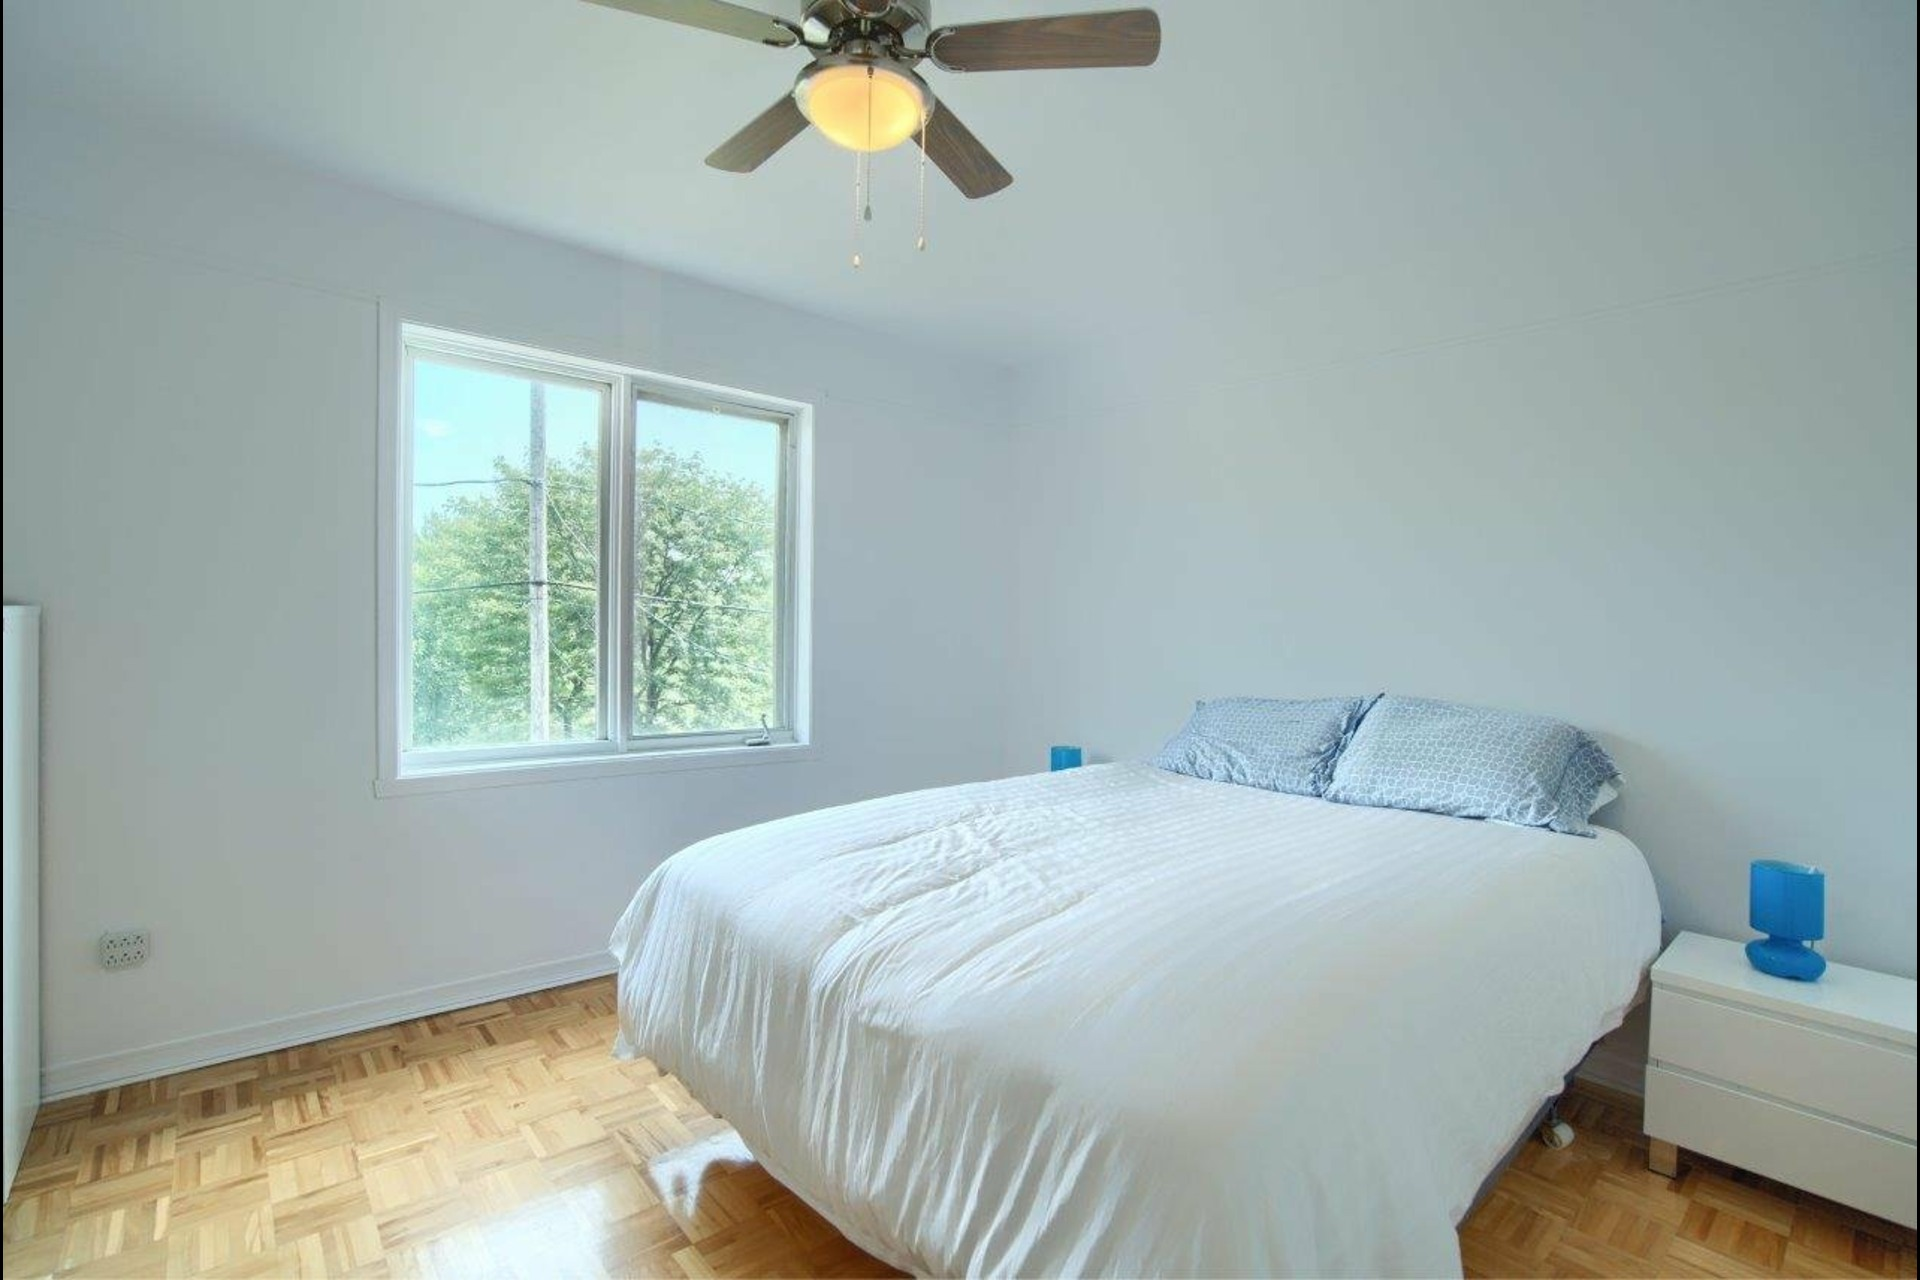 image 11 - House For sale Brossard - 12 rooms